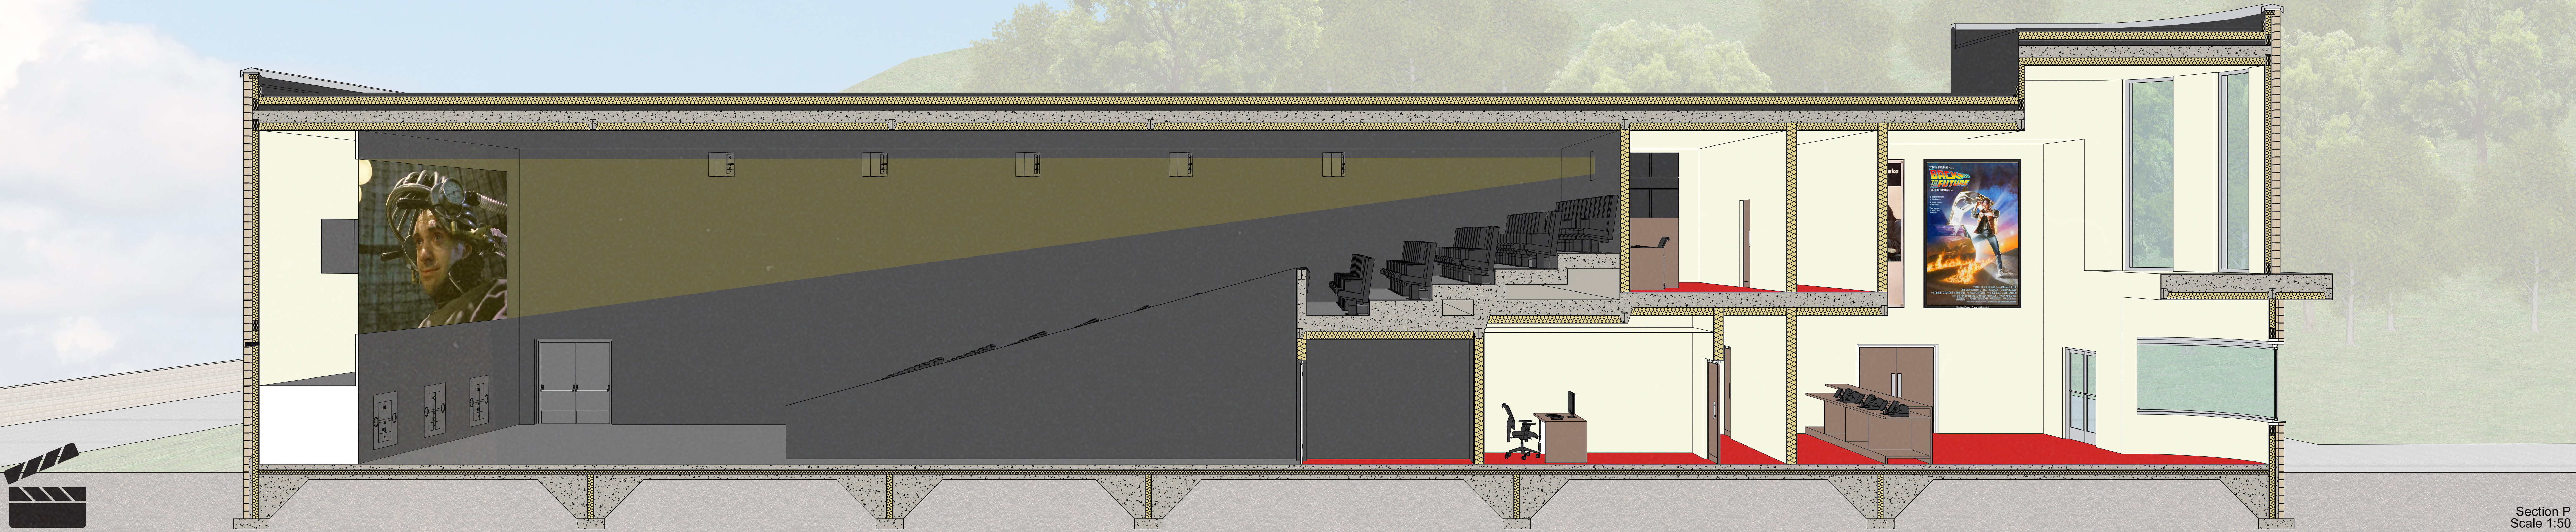 Perspective Section of the Cinema